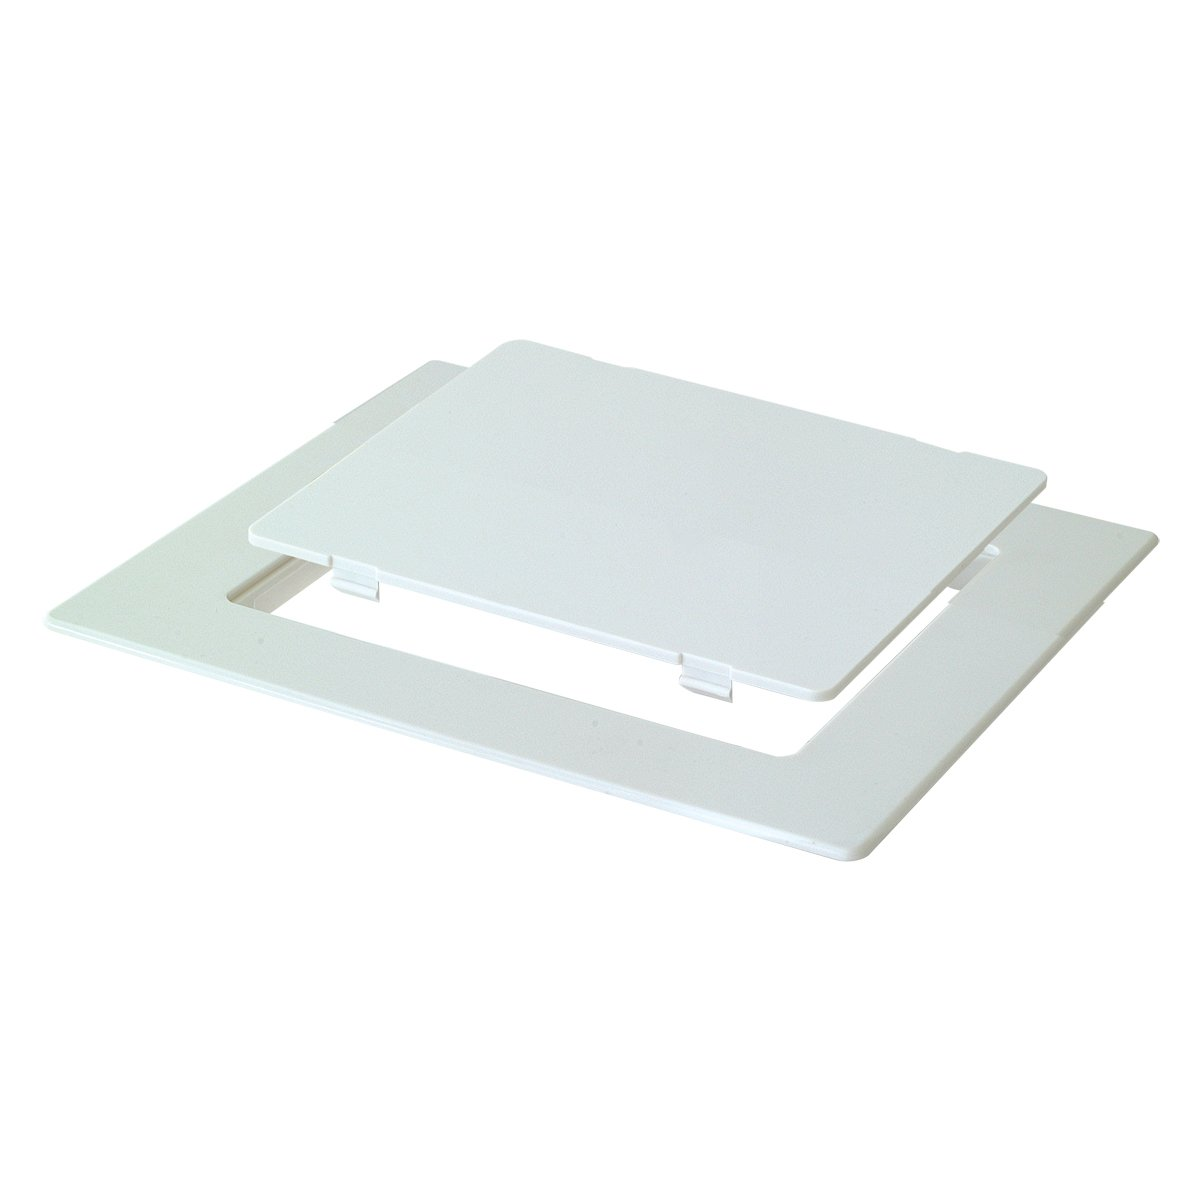 EZ-FLO 34021 Access Panel with Frame